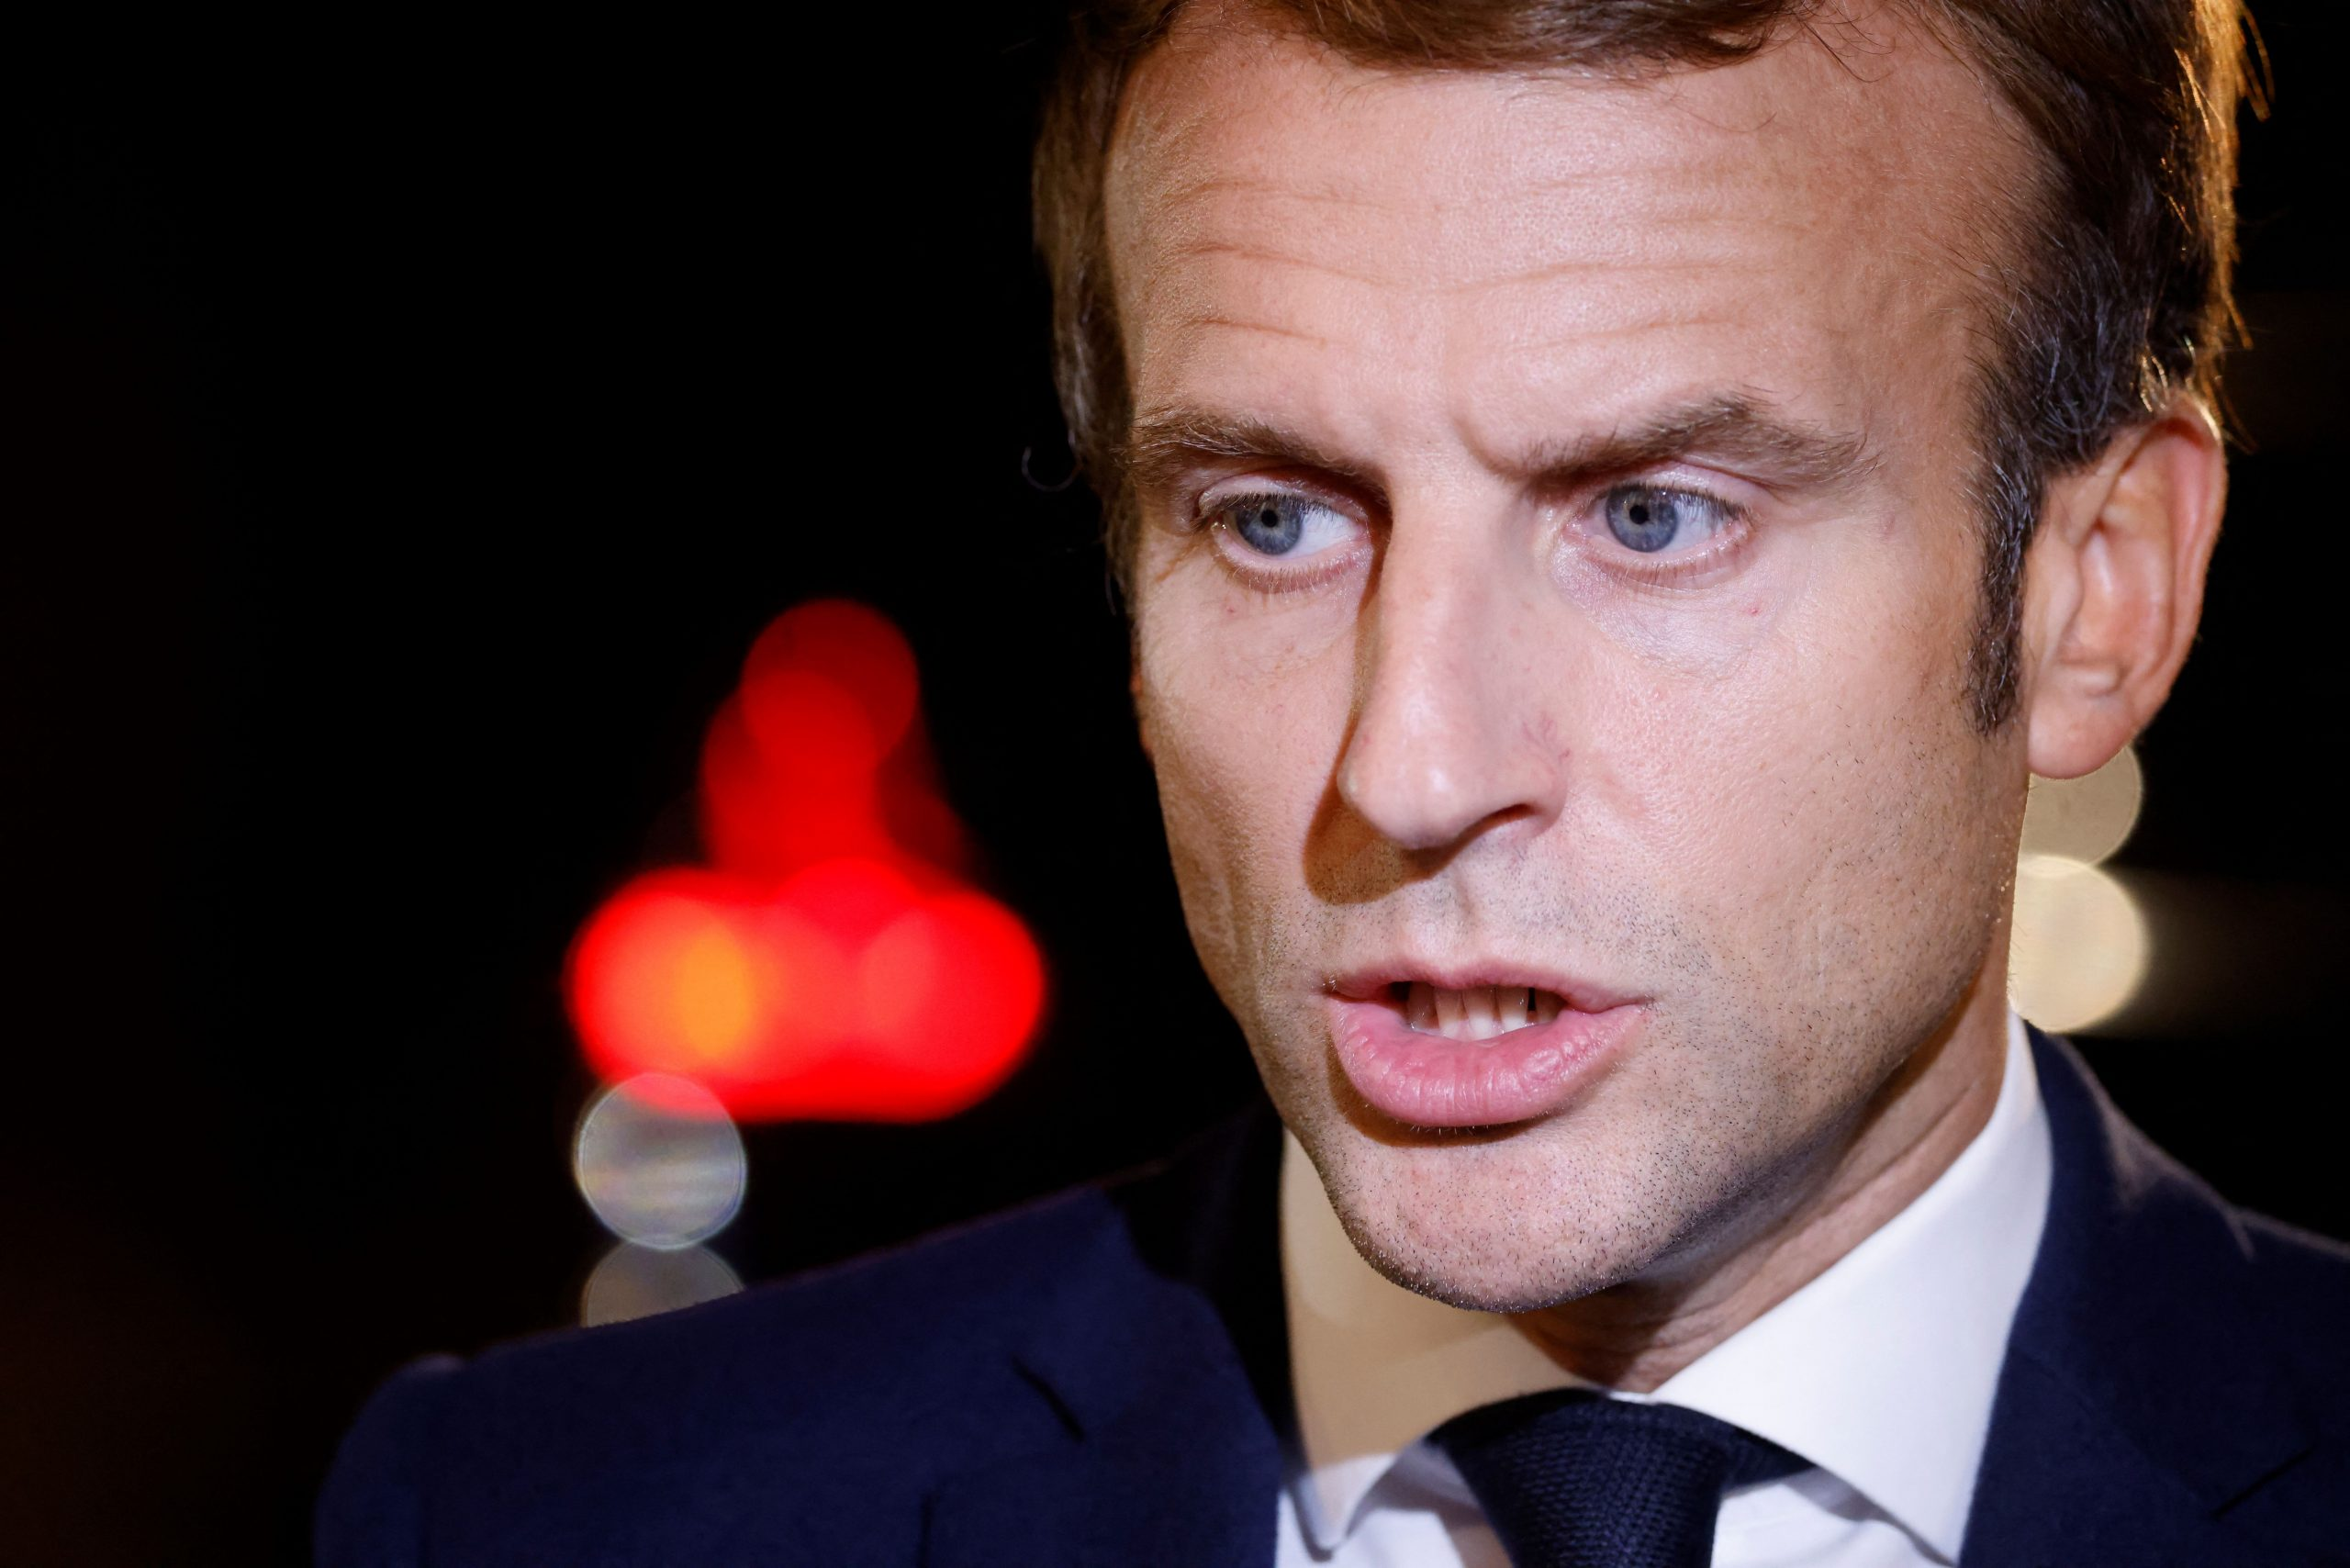 Macron on French-U.S. alliance: 'We will see'